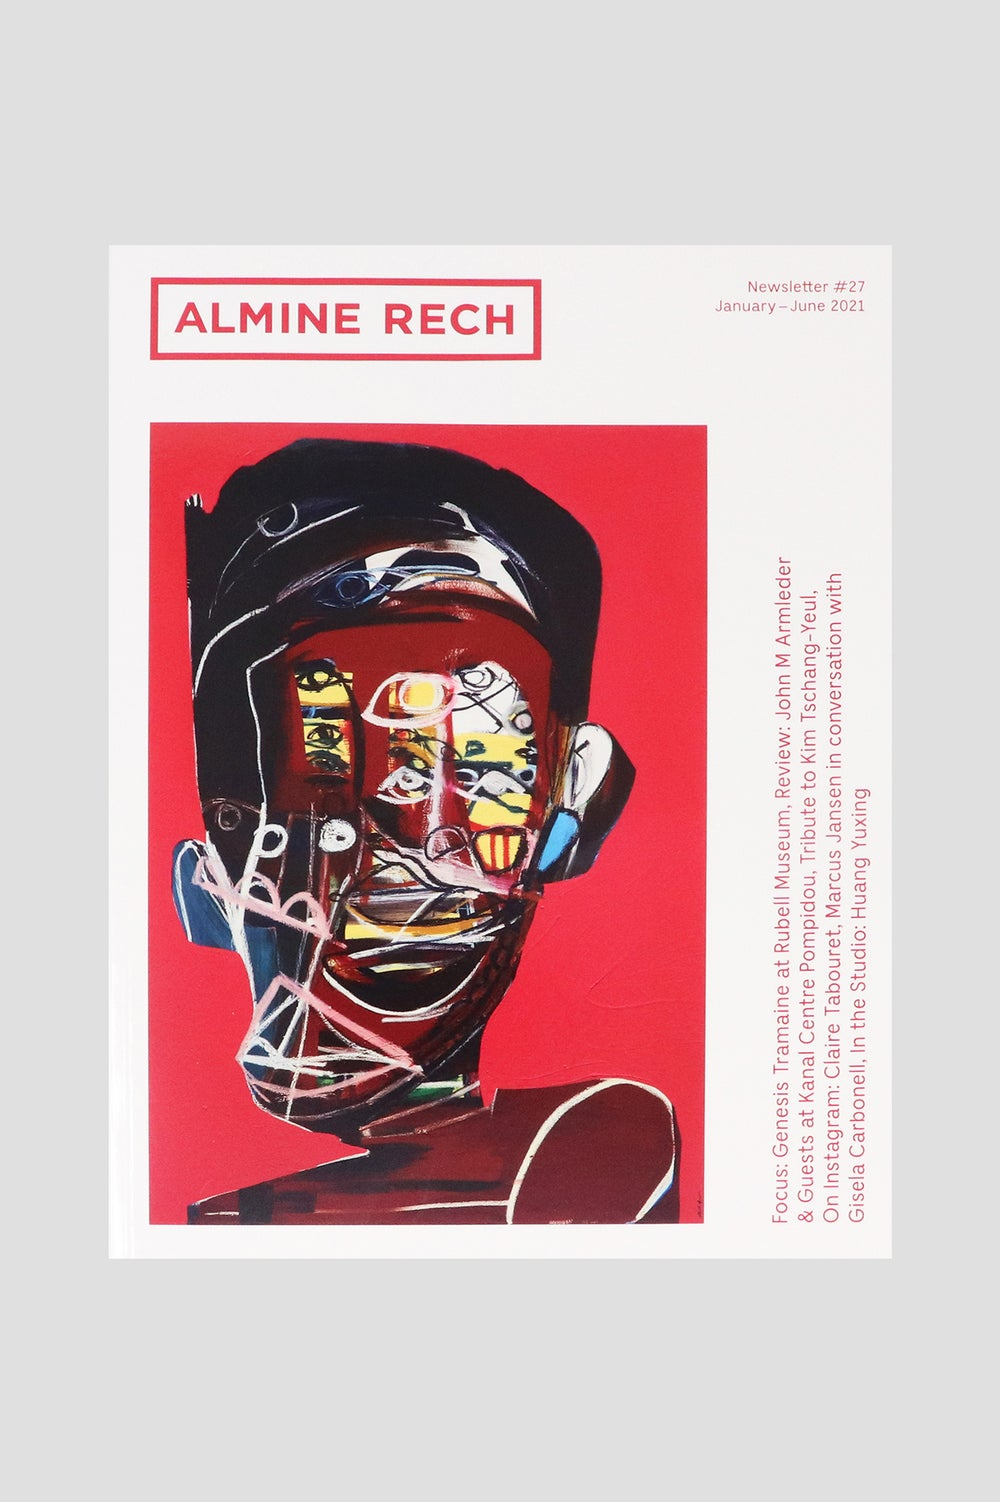 Image of Almine Rech - Newsletter #27